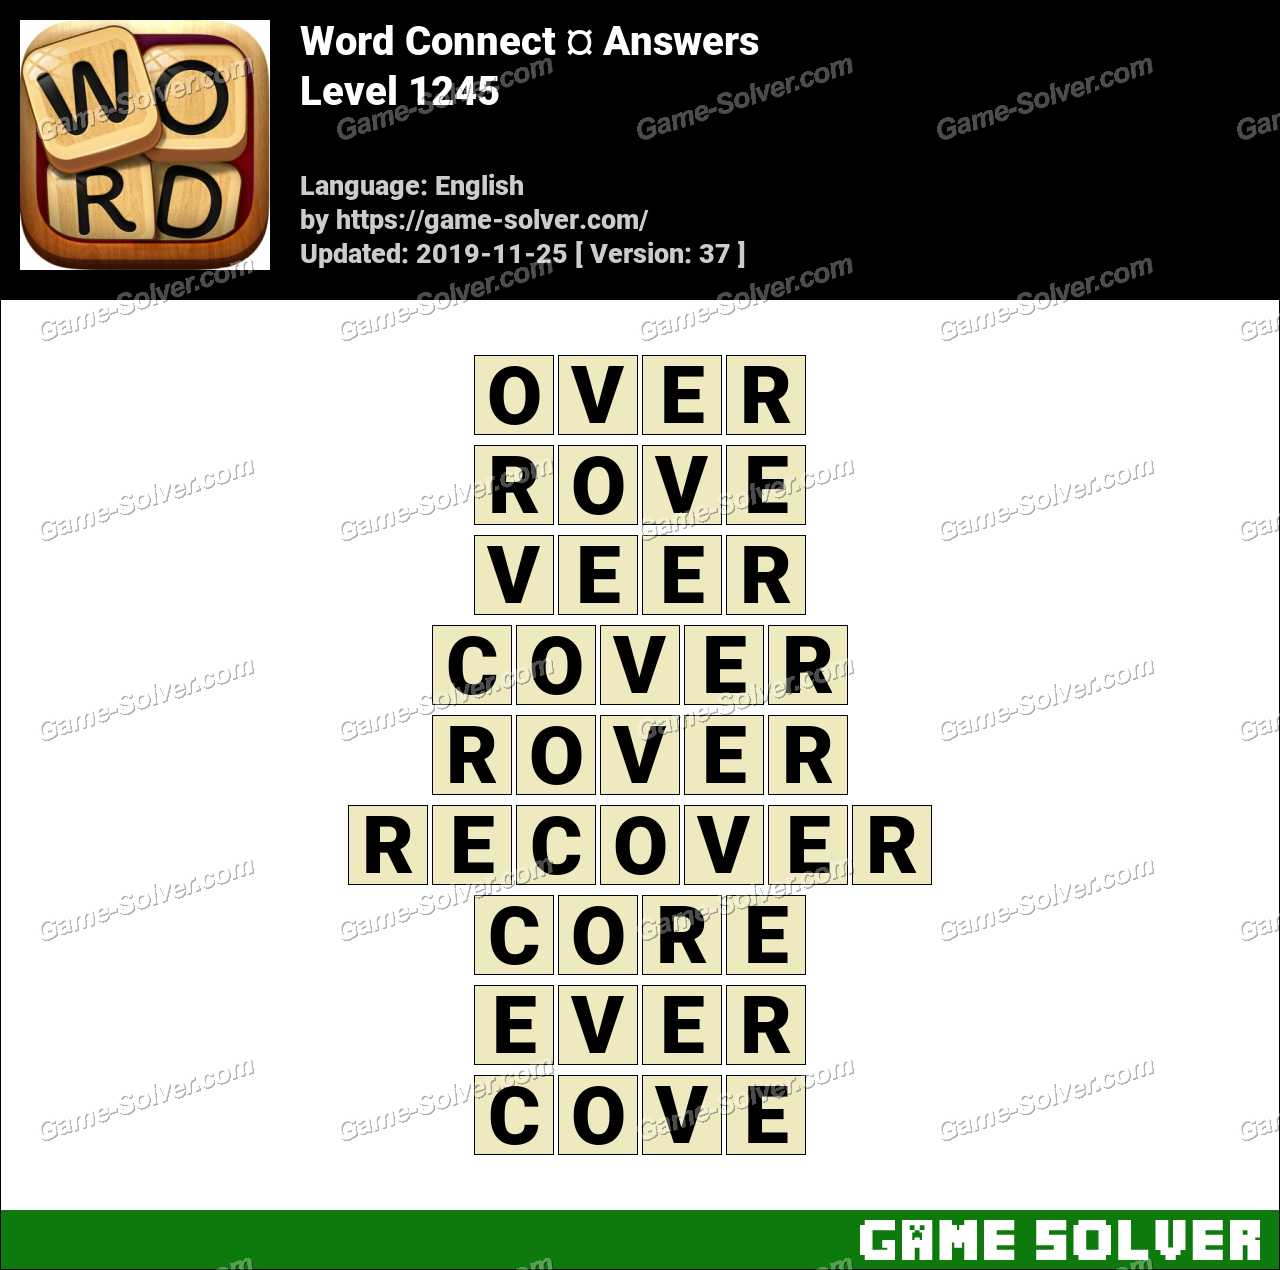 Word Connect Level 1245 Answers